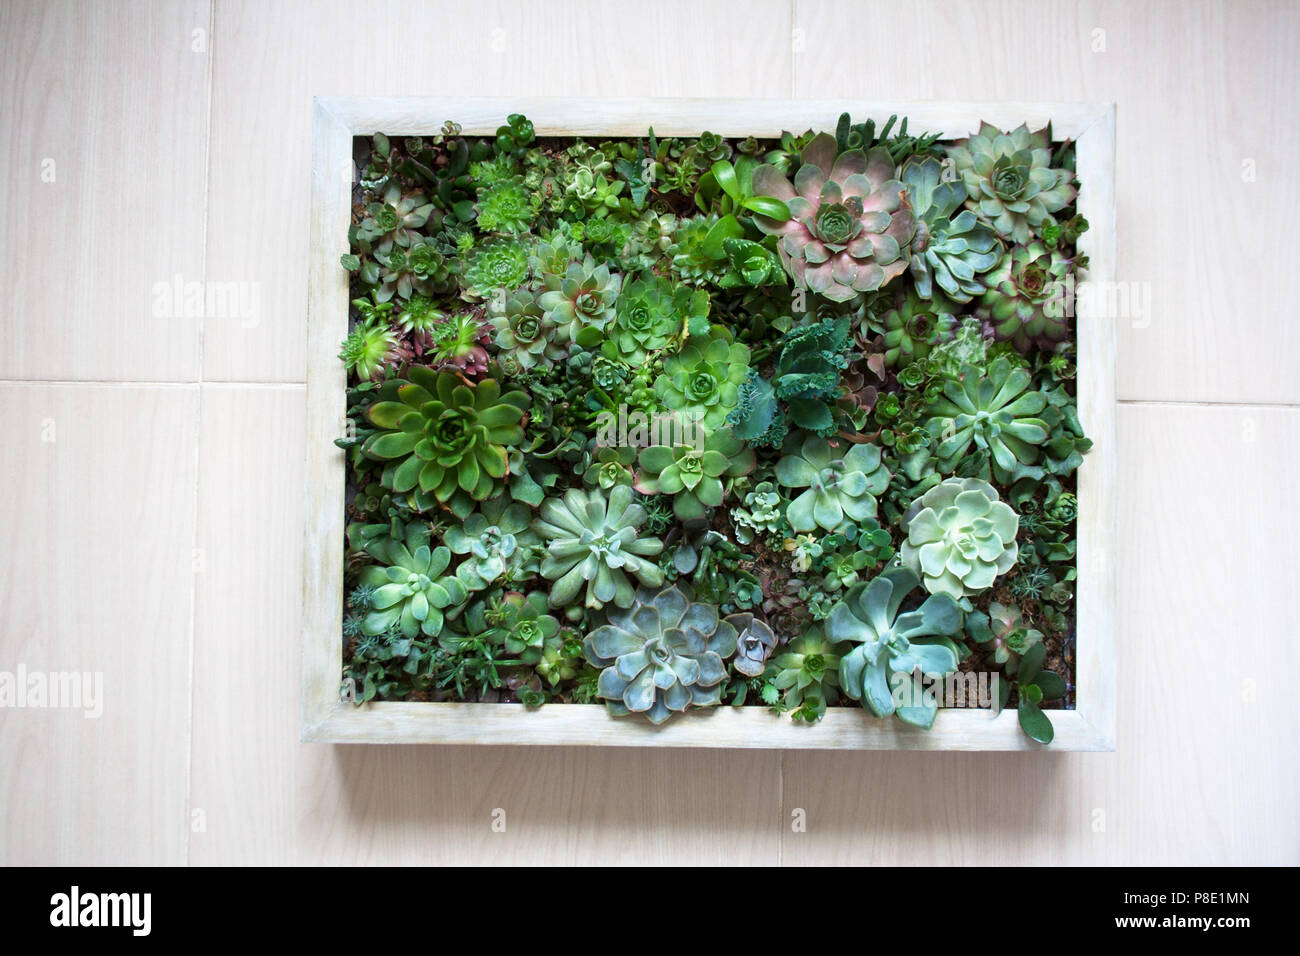 Vertical Succulent Wall Planter In Beige Wooden Frame Stock Photo Alamy